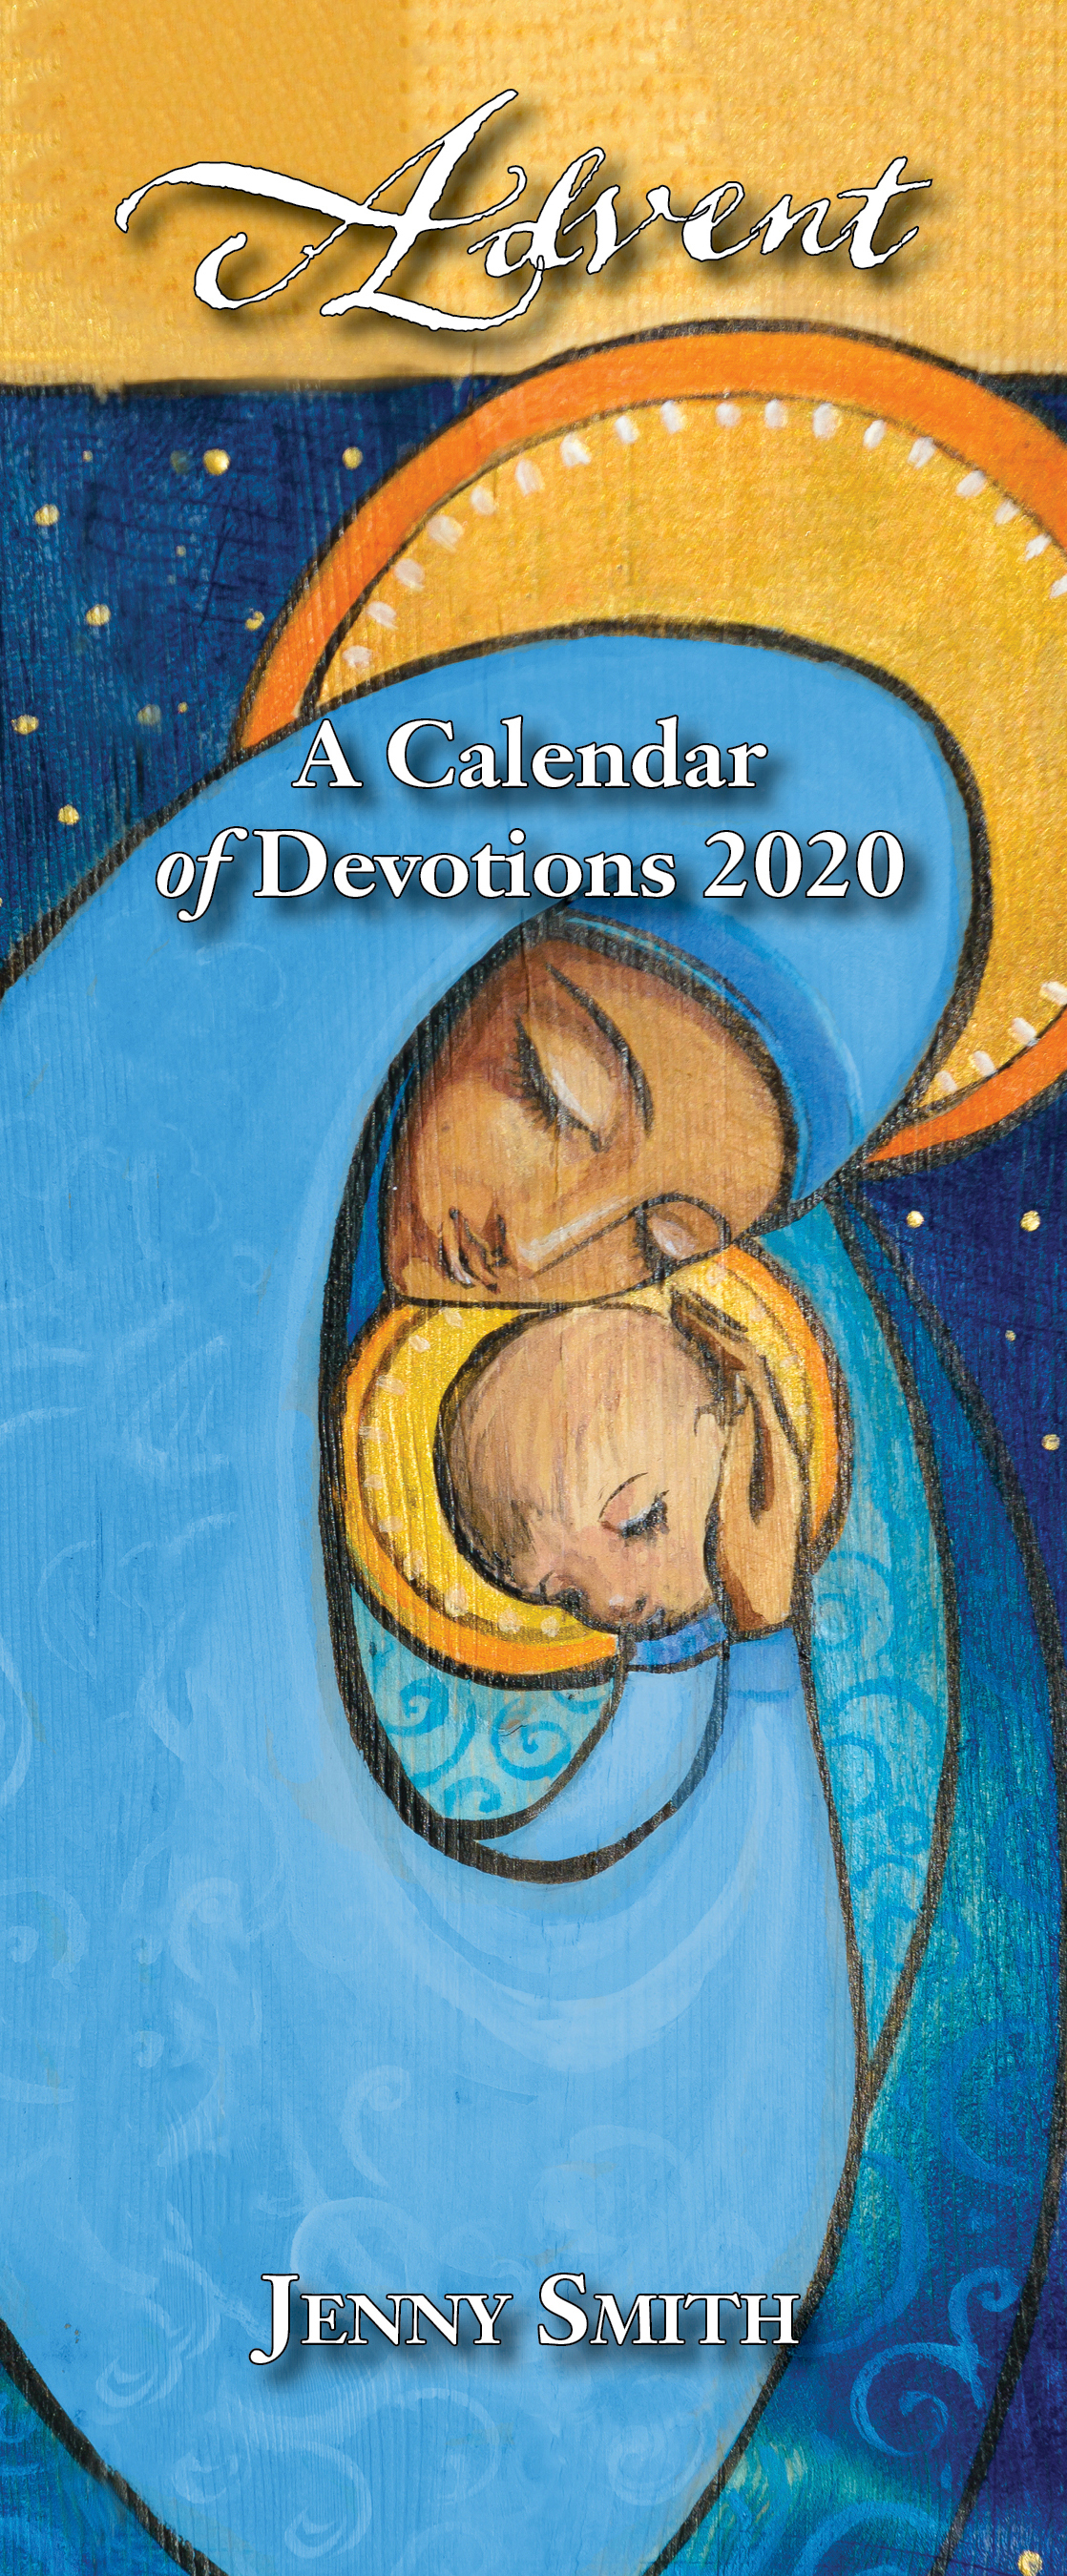 Advent: A Calendar of Devotions 2020